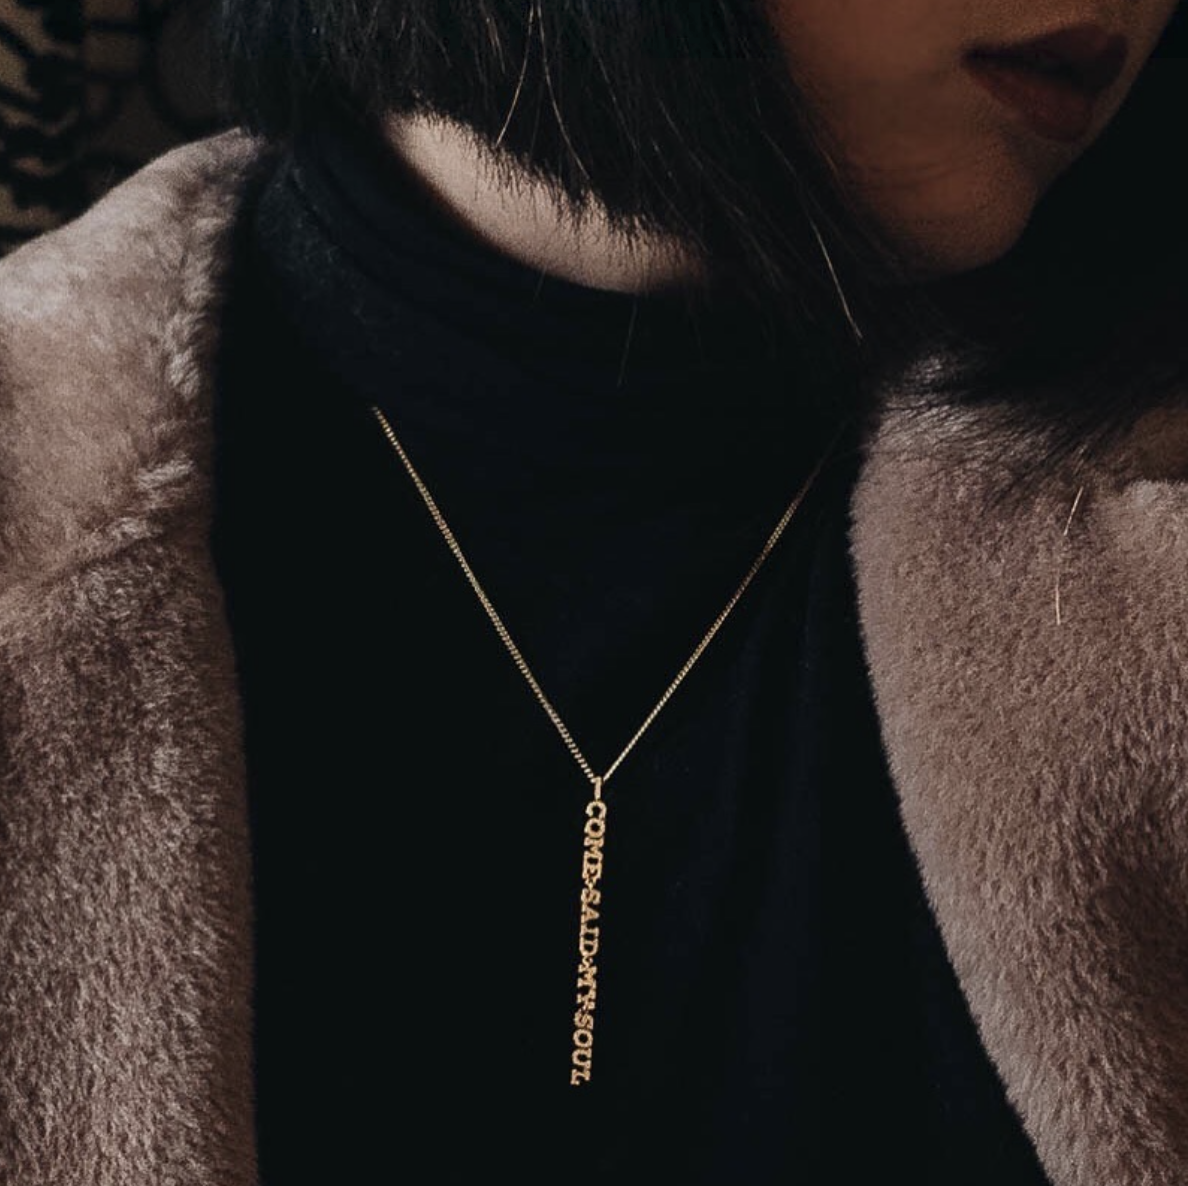 Maggie Zhu  wears her piece against a black top for added statement. See her post  here